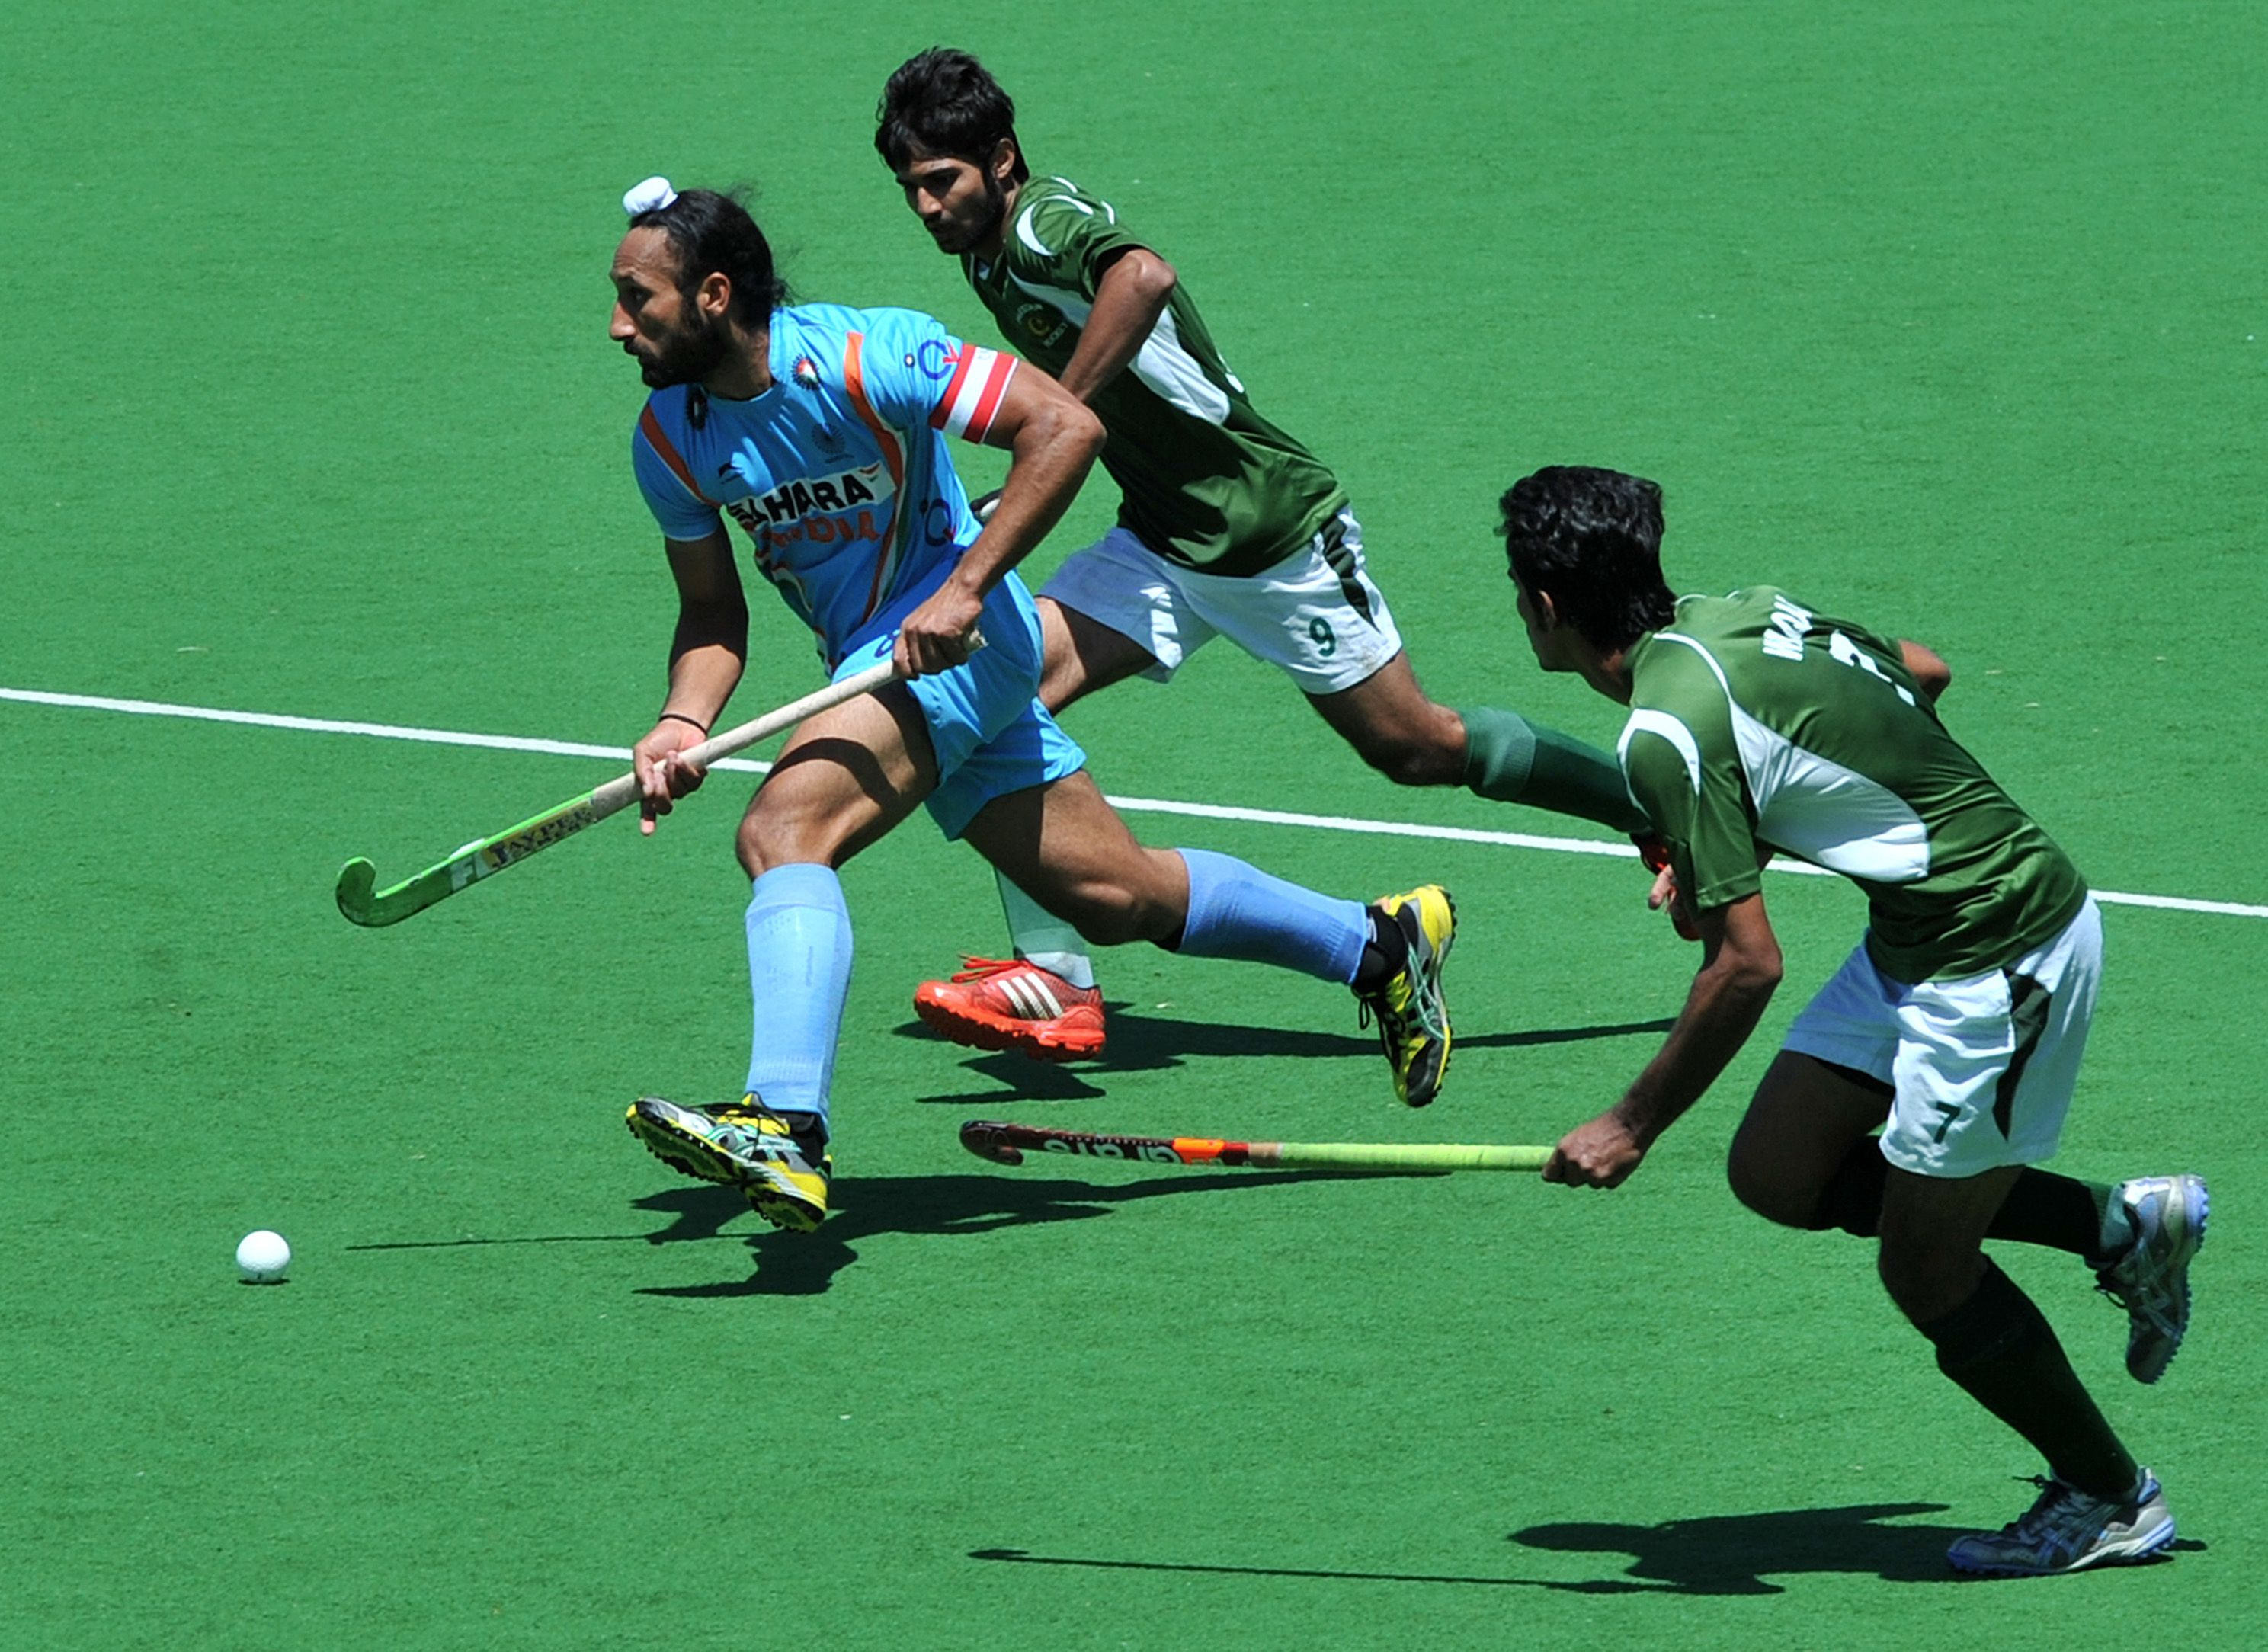 Sports Wallpaper For Walls India: An India, Pakistan Hockey Match Is In Progress